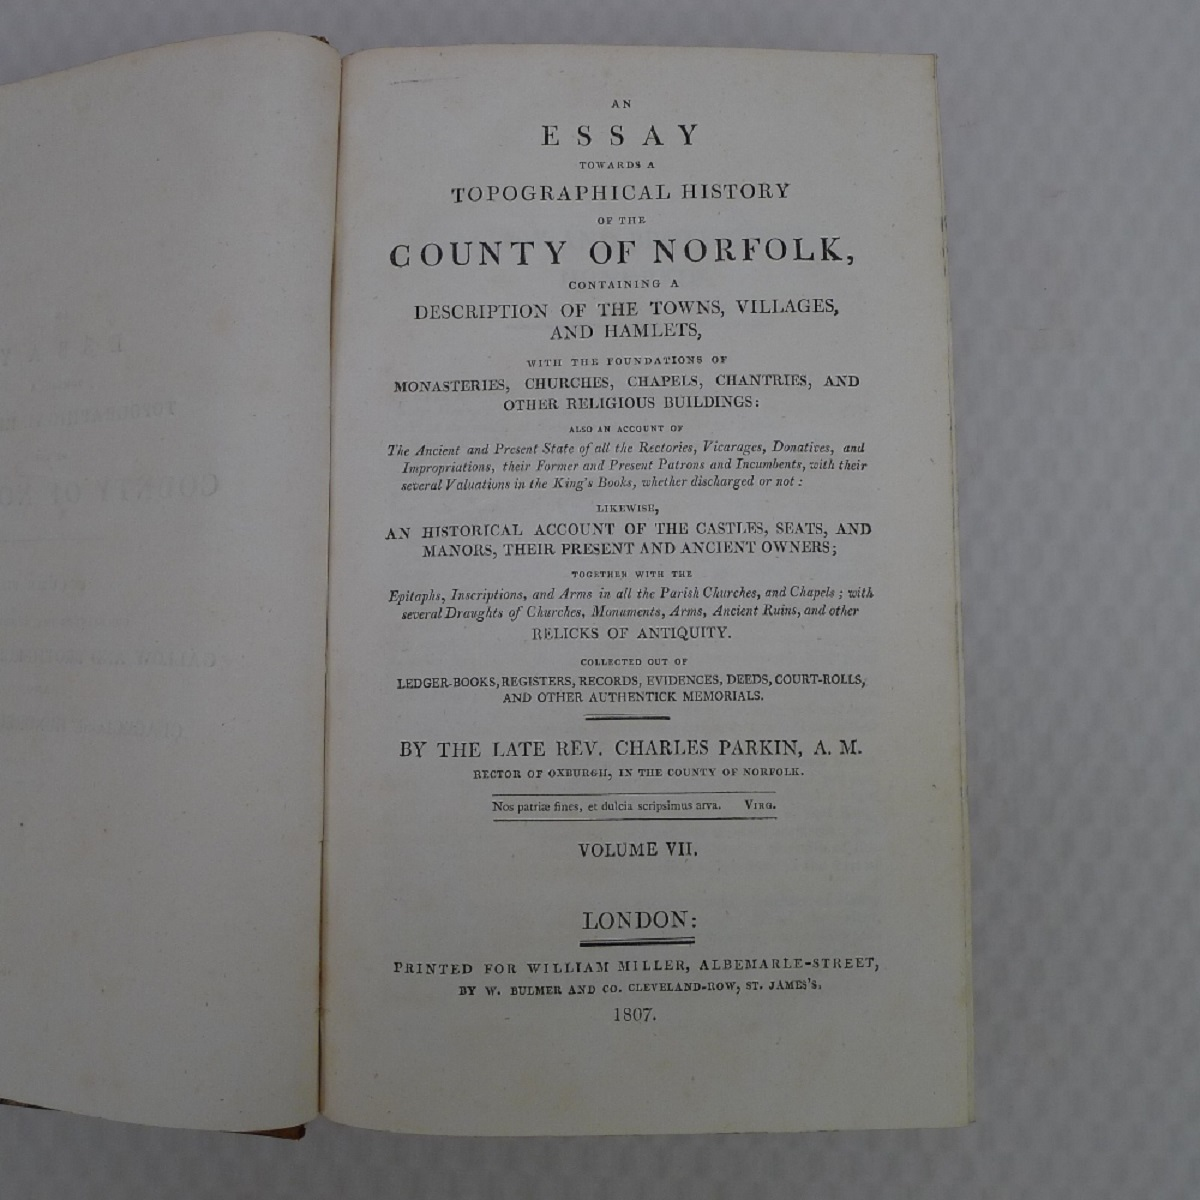 All 11 volumes of An Essay Towards the Topographical History of the County of Norfolk by Thomas - Image 16 of 23